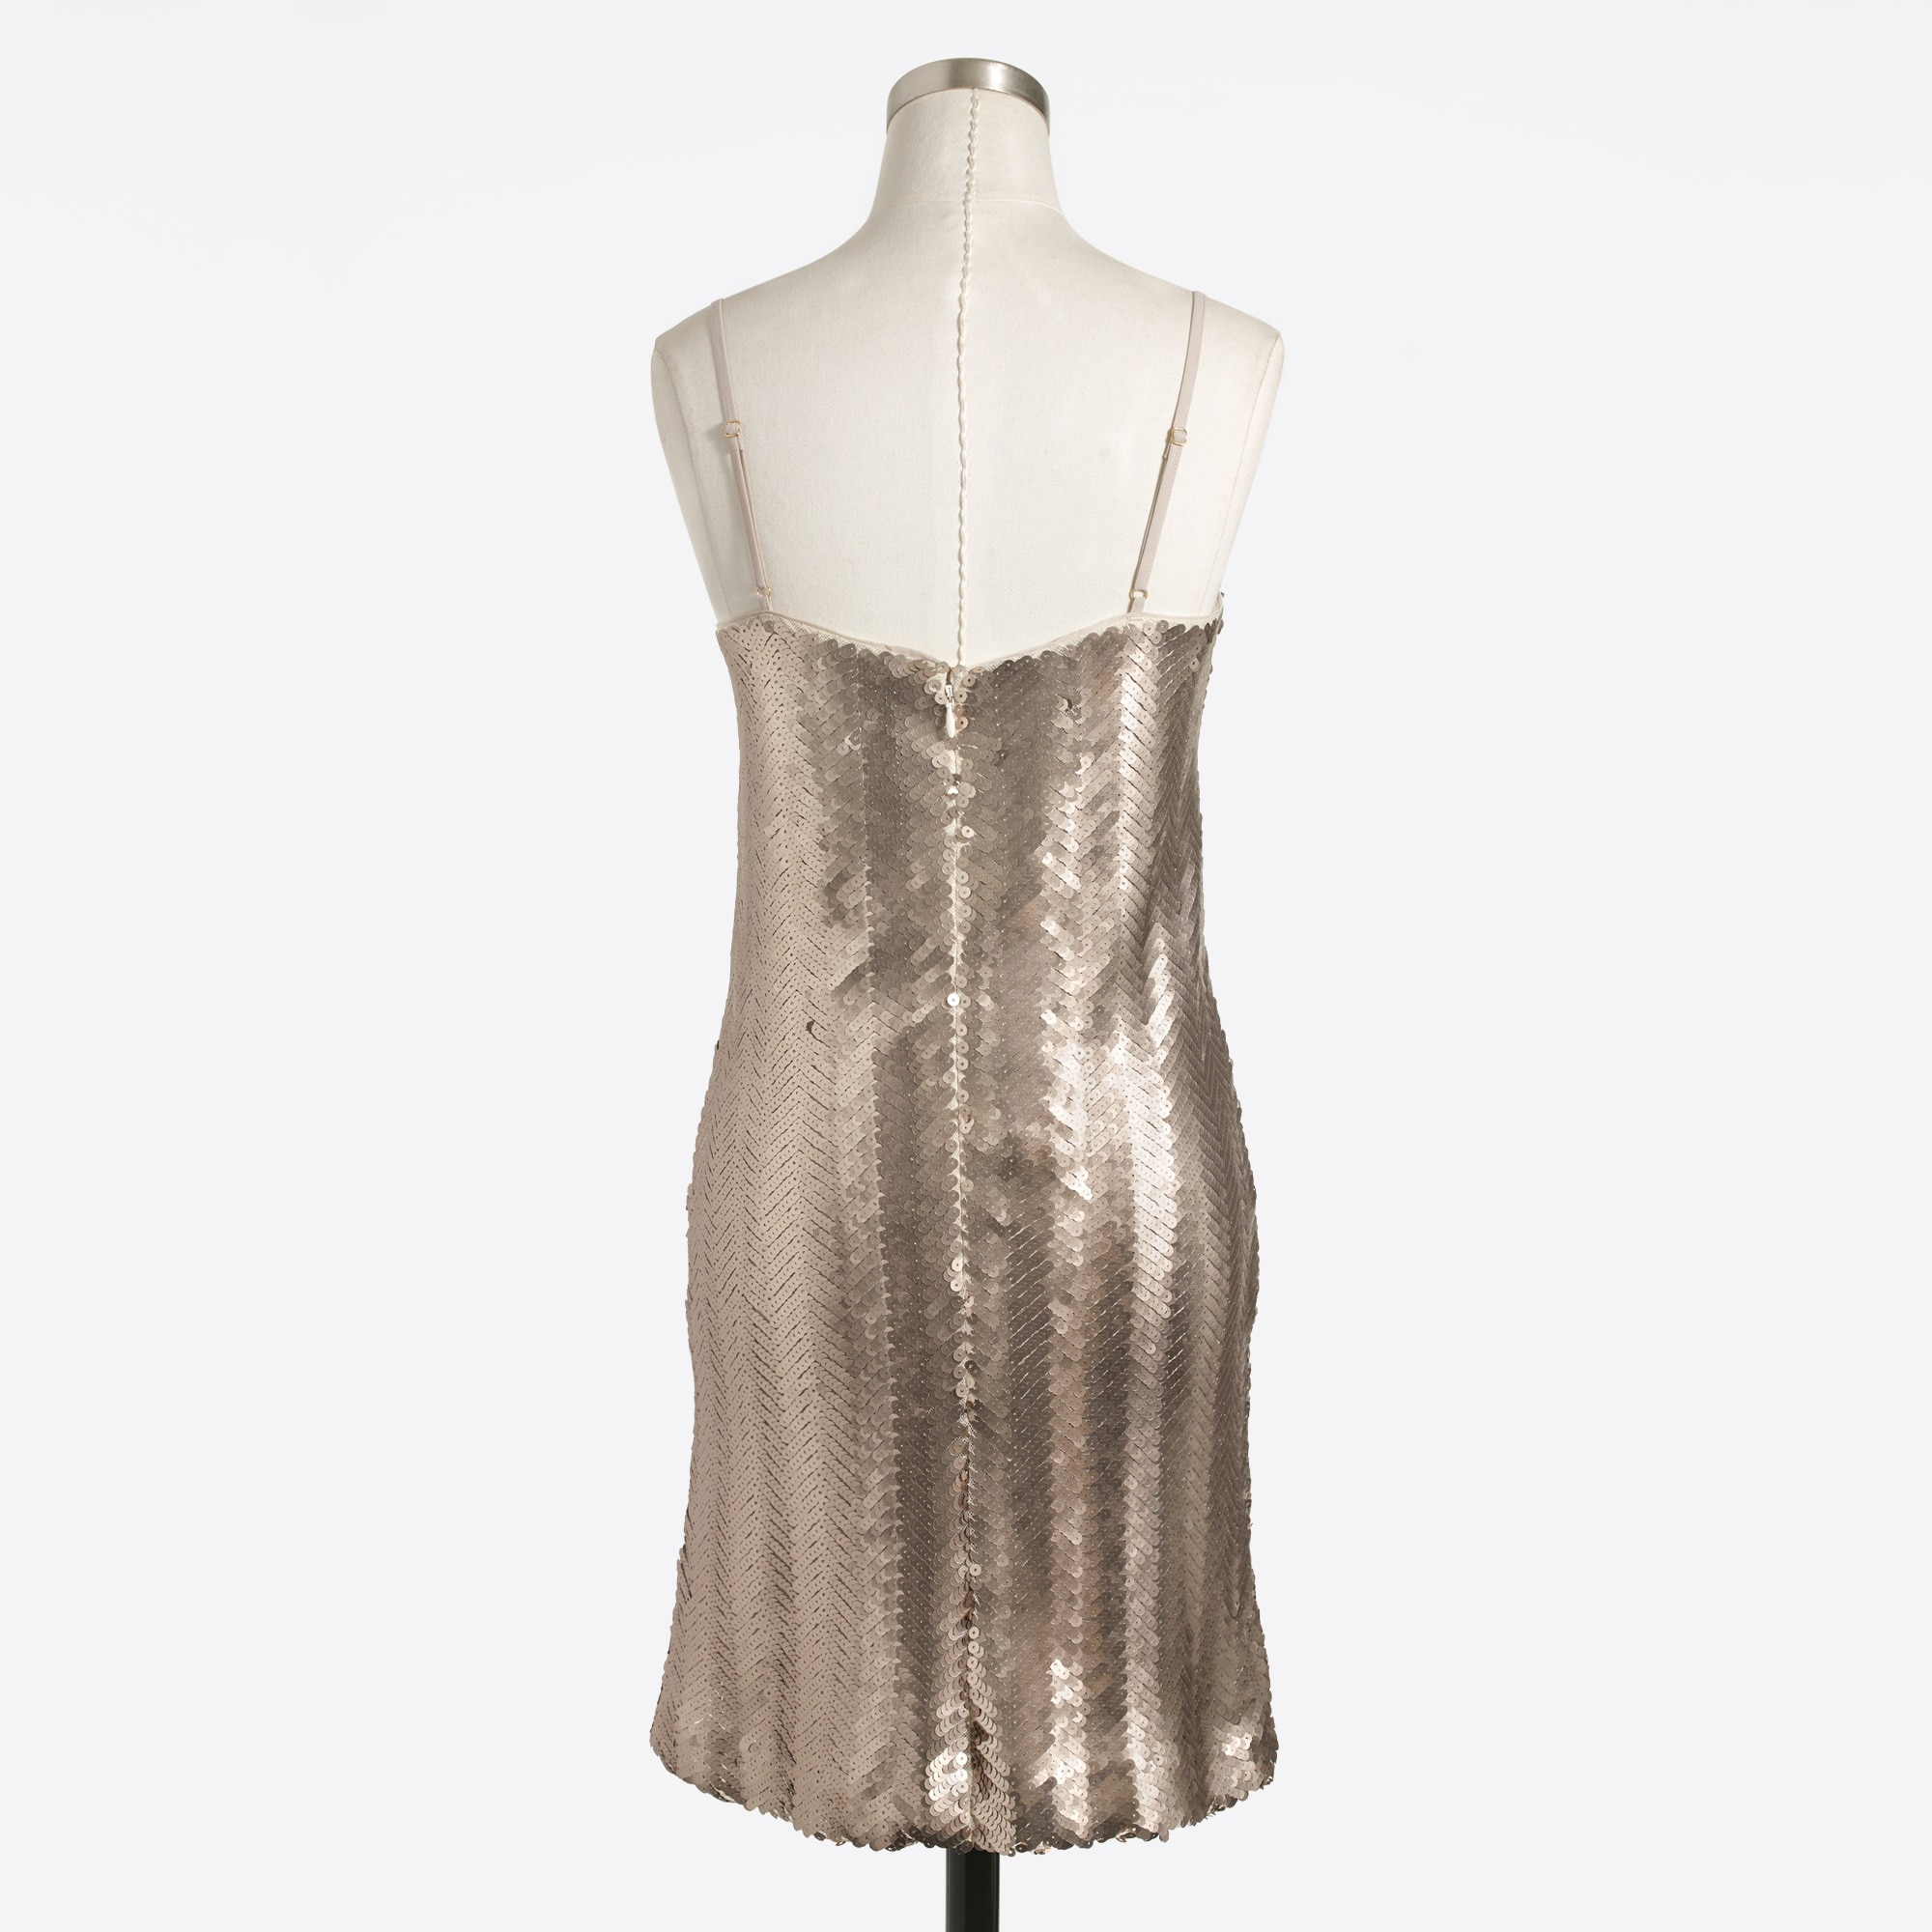 Image 1 for Sequin herringbone slip dress